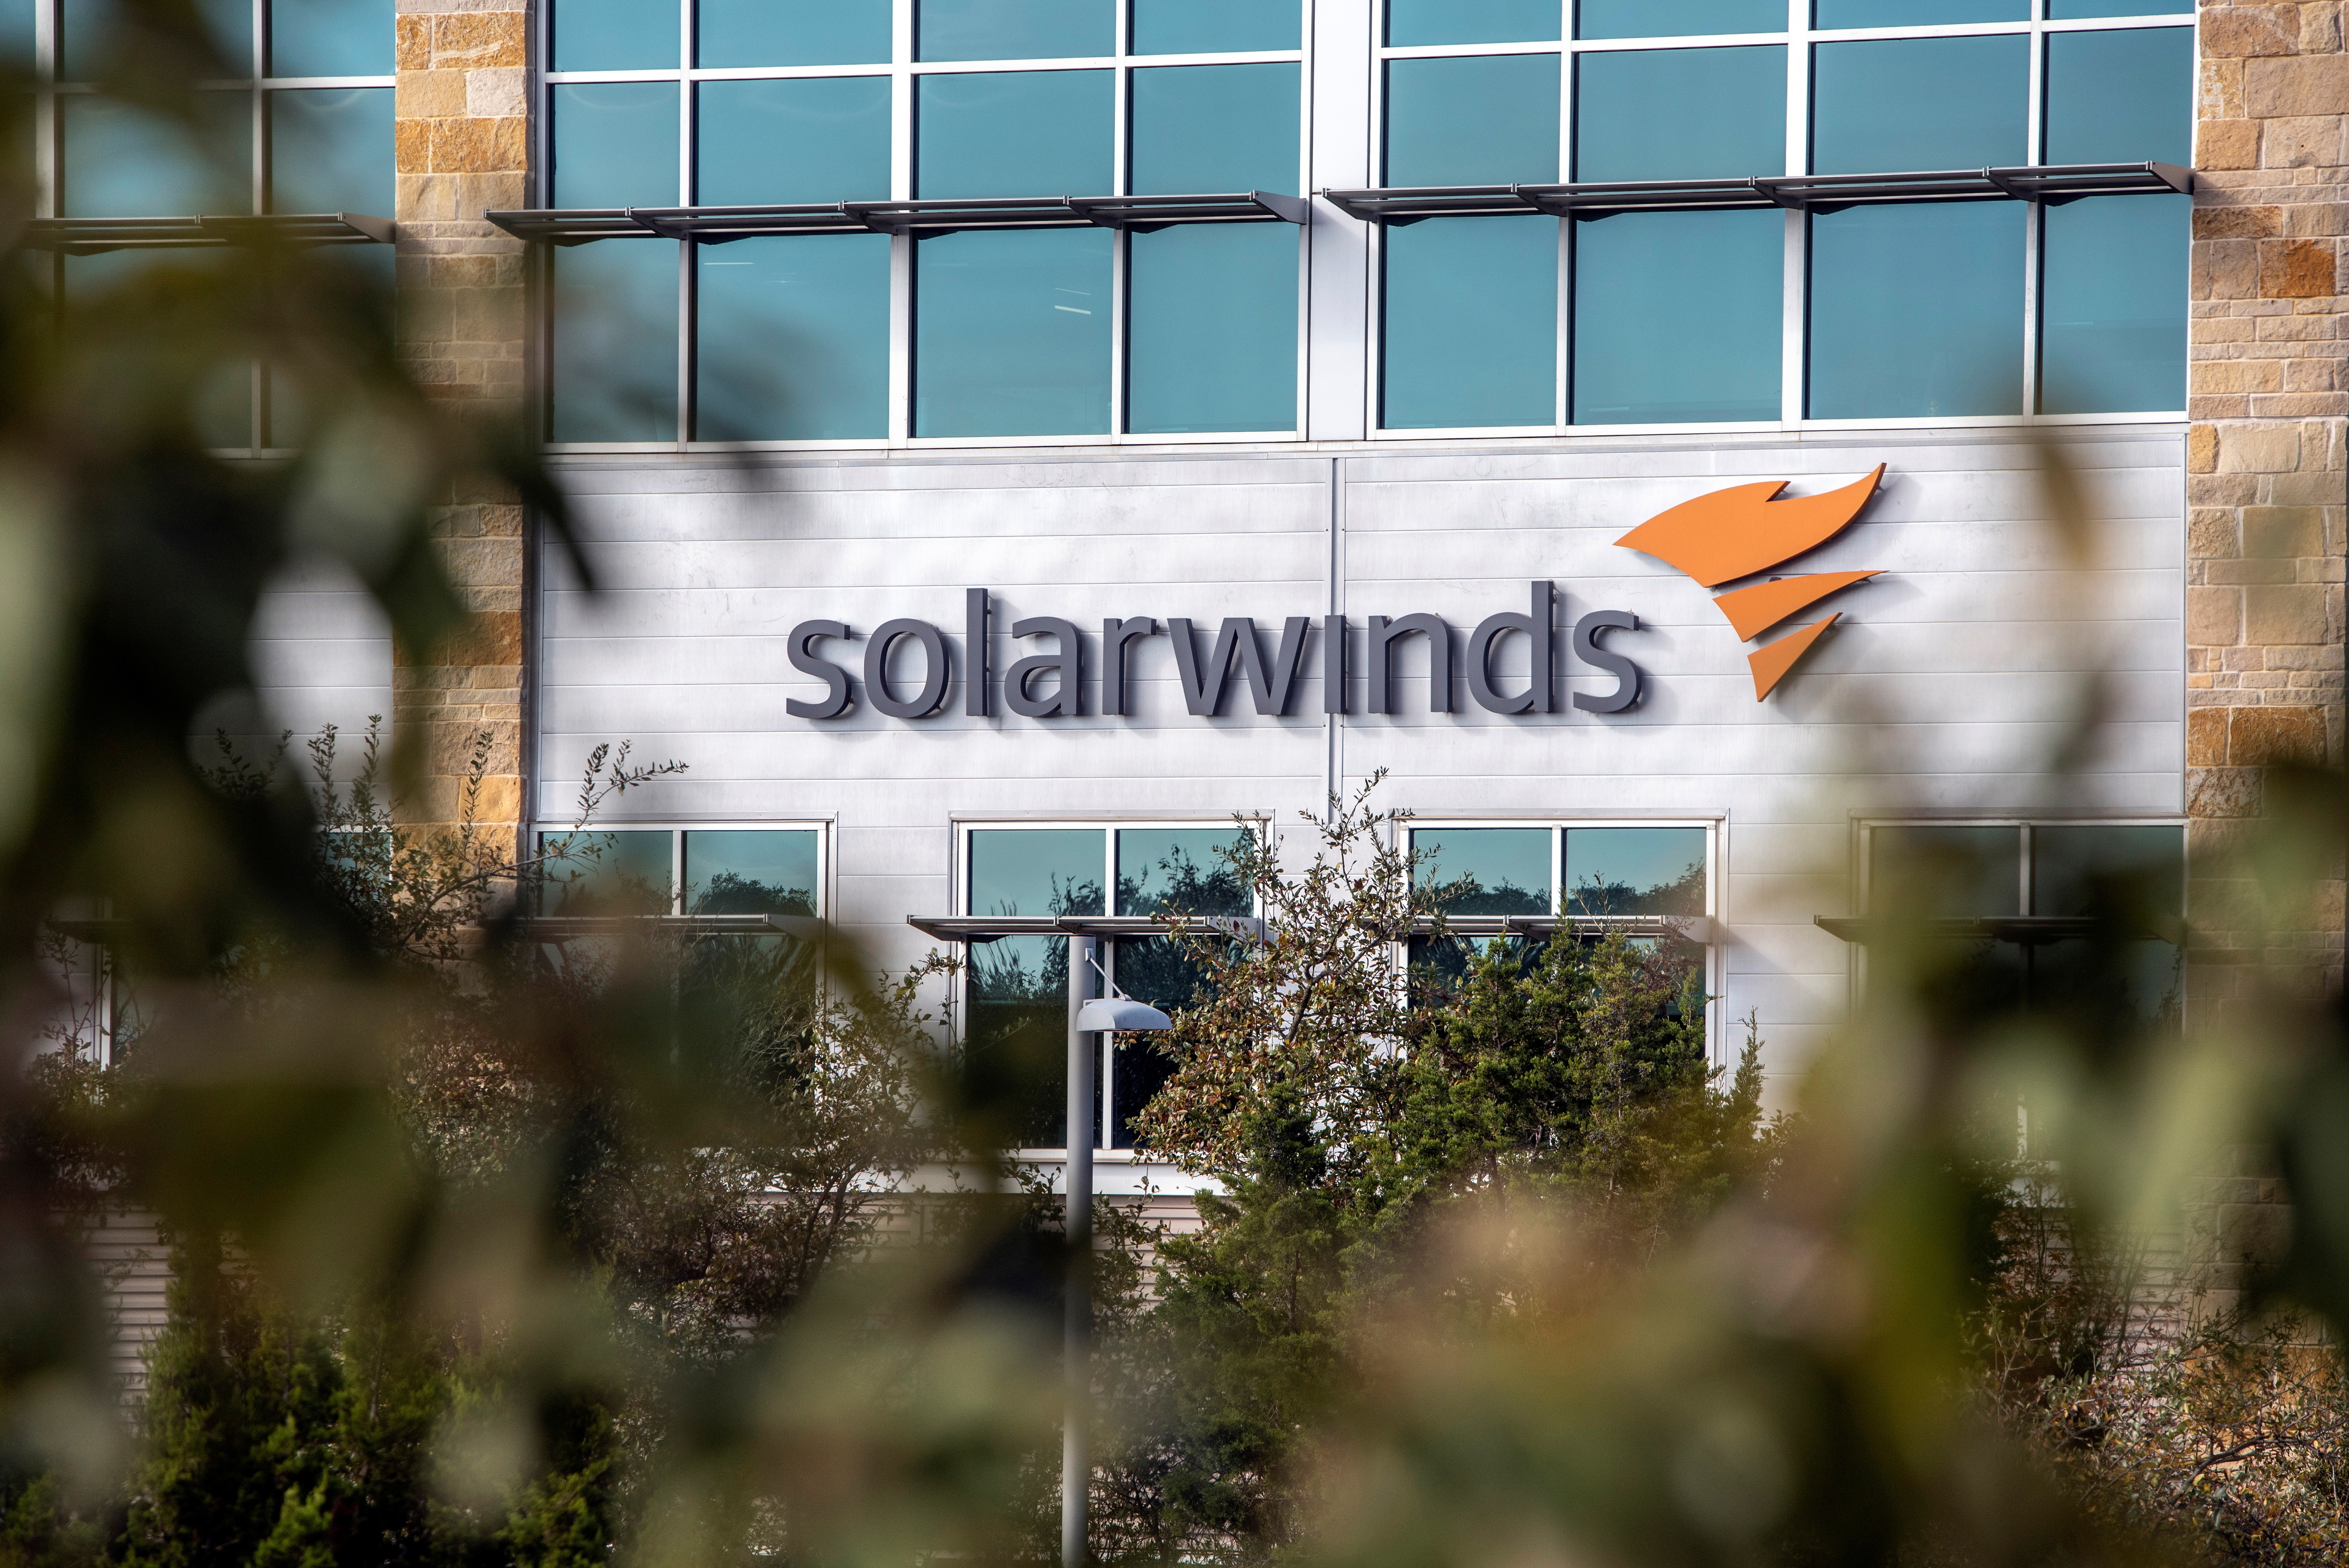 The SolarWinds logo is seen outside its headquarters in Austin, Texas, U.S., December 18, 2020. REUTERS/Sergio Flores - RC2UPK949M6J